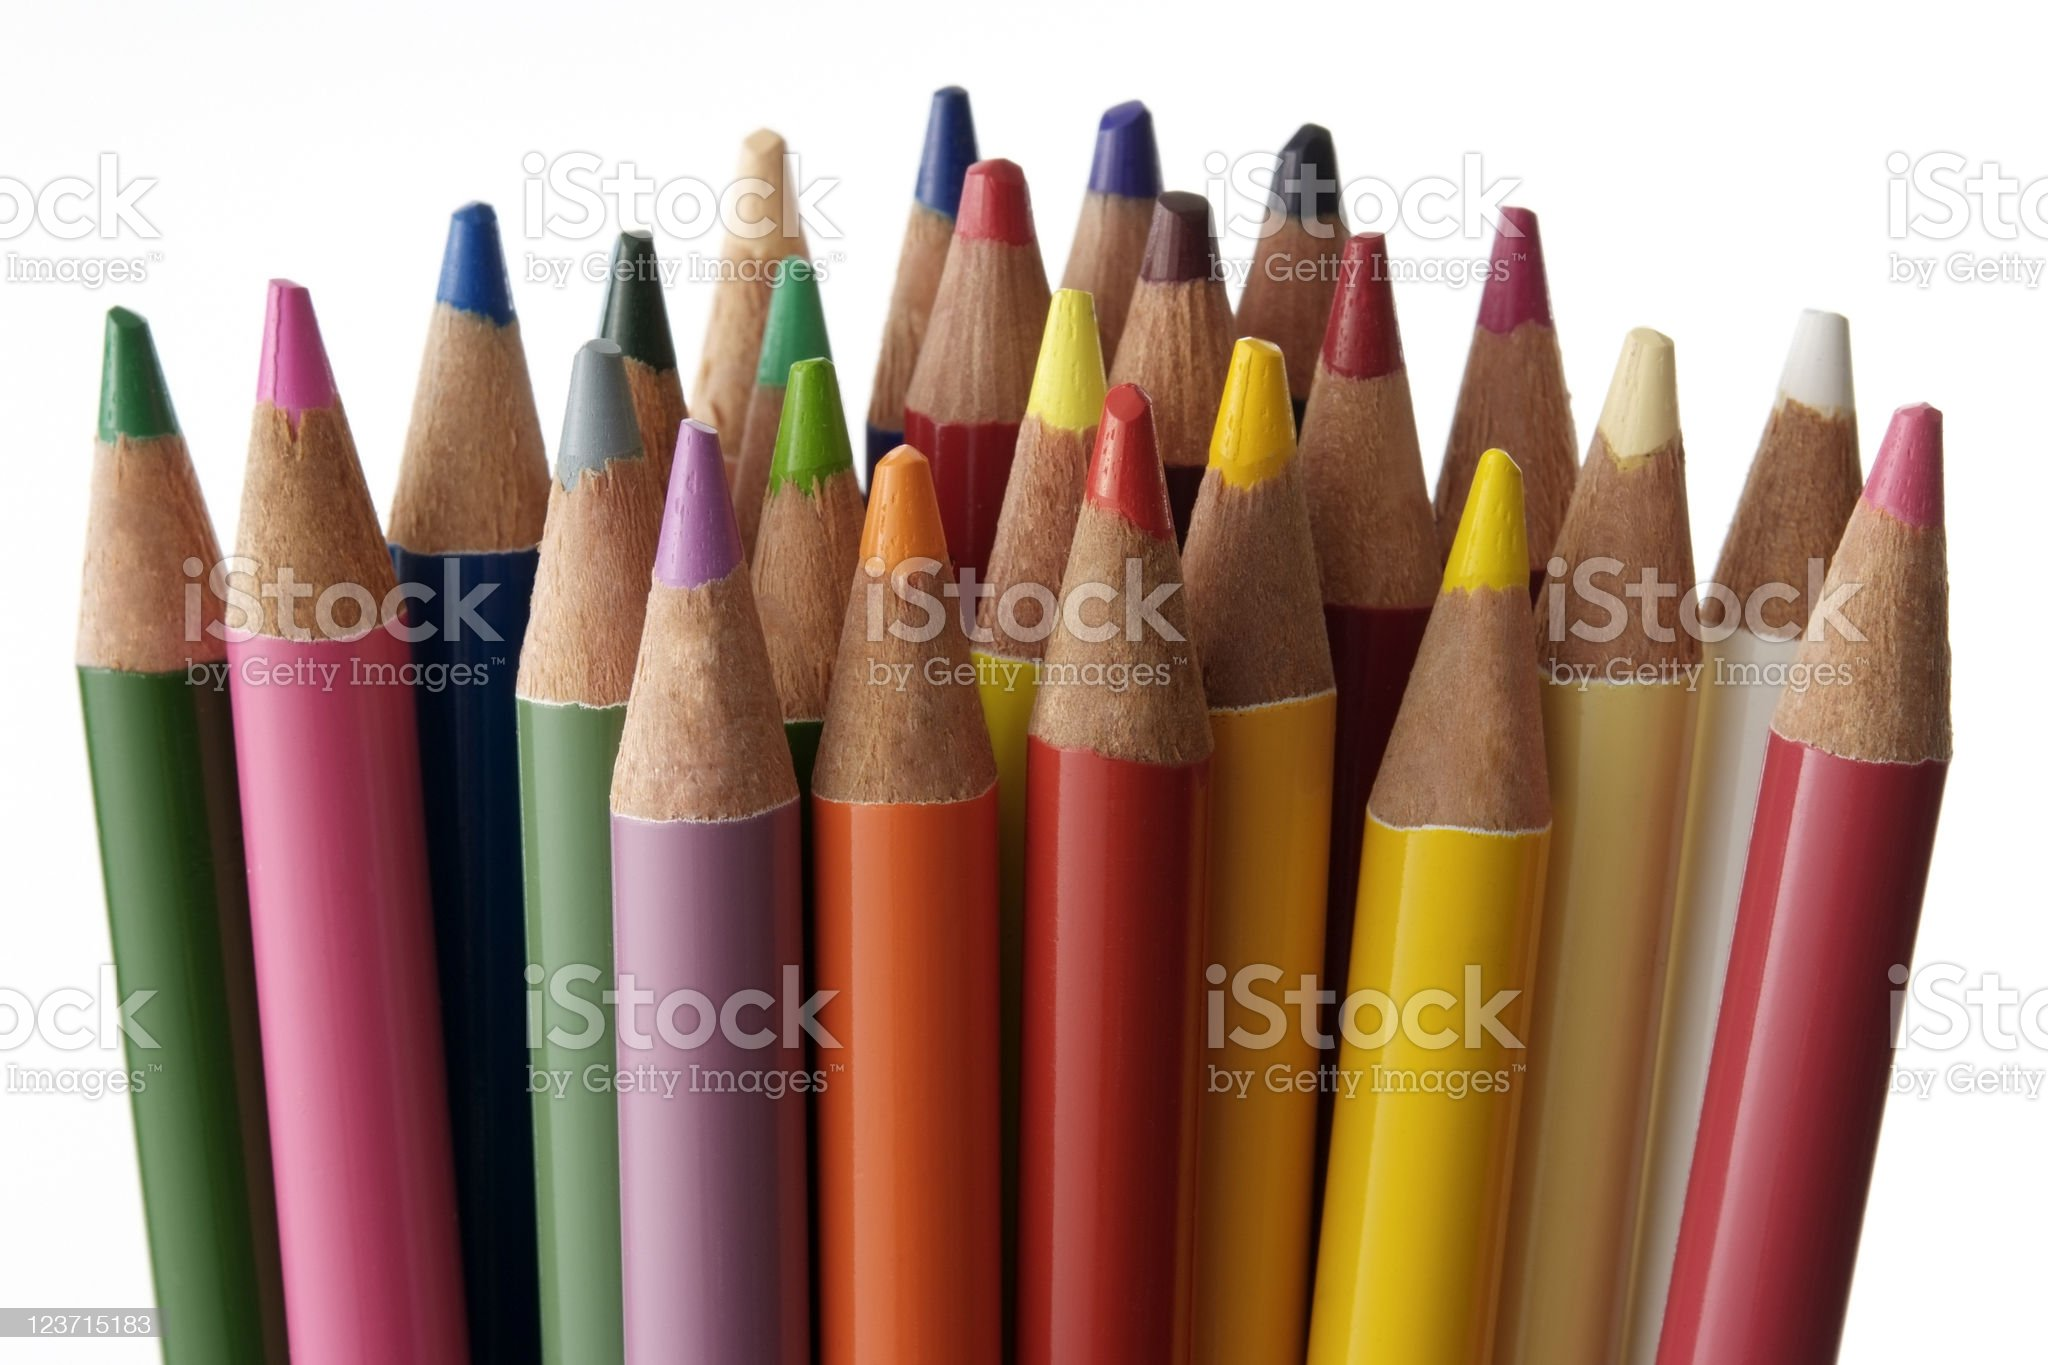 Isolated shot of many color pencils on white background royalty-free stock photo